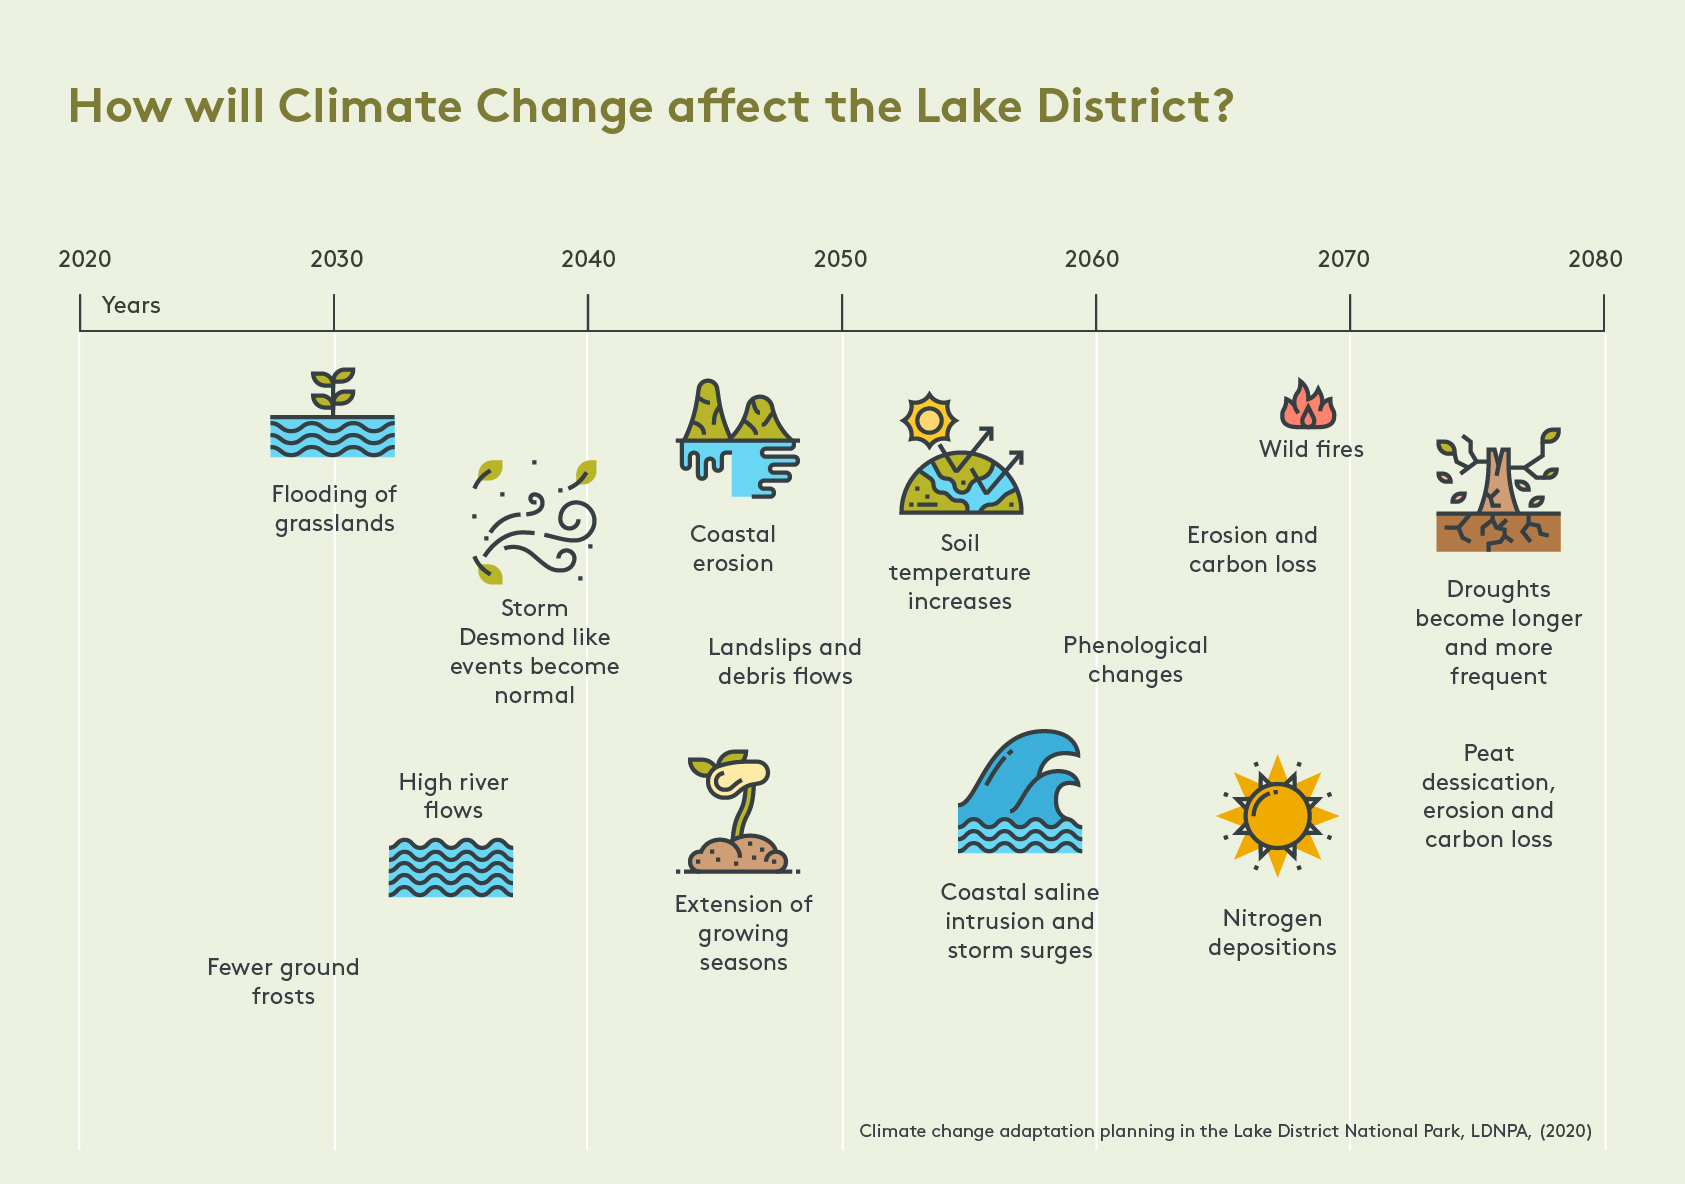 Climate affecting the Lake District